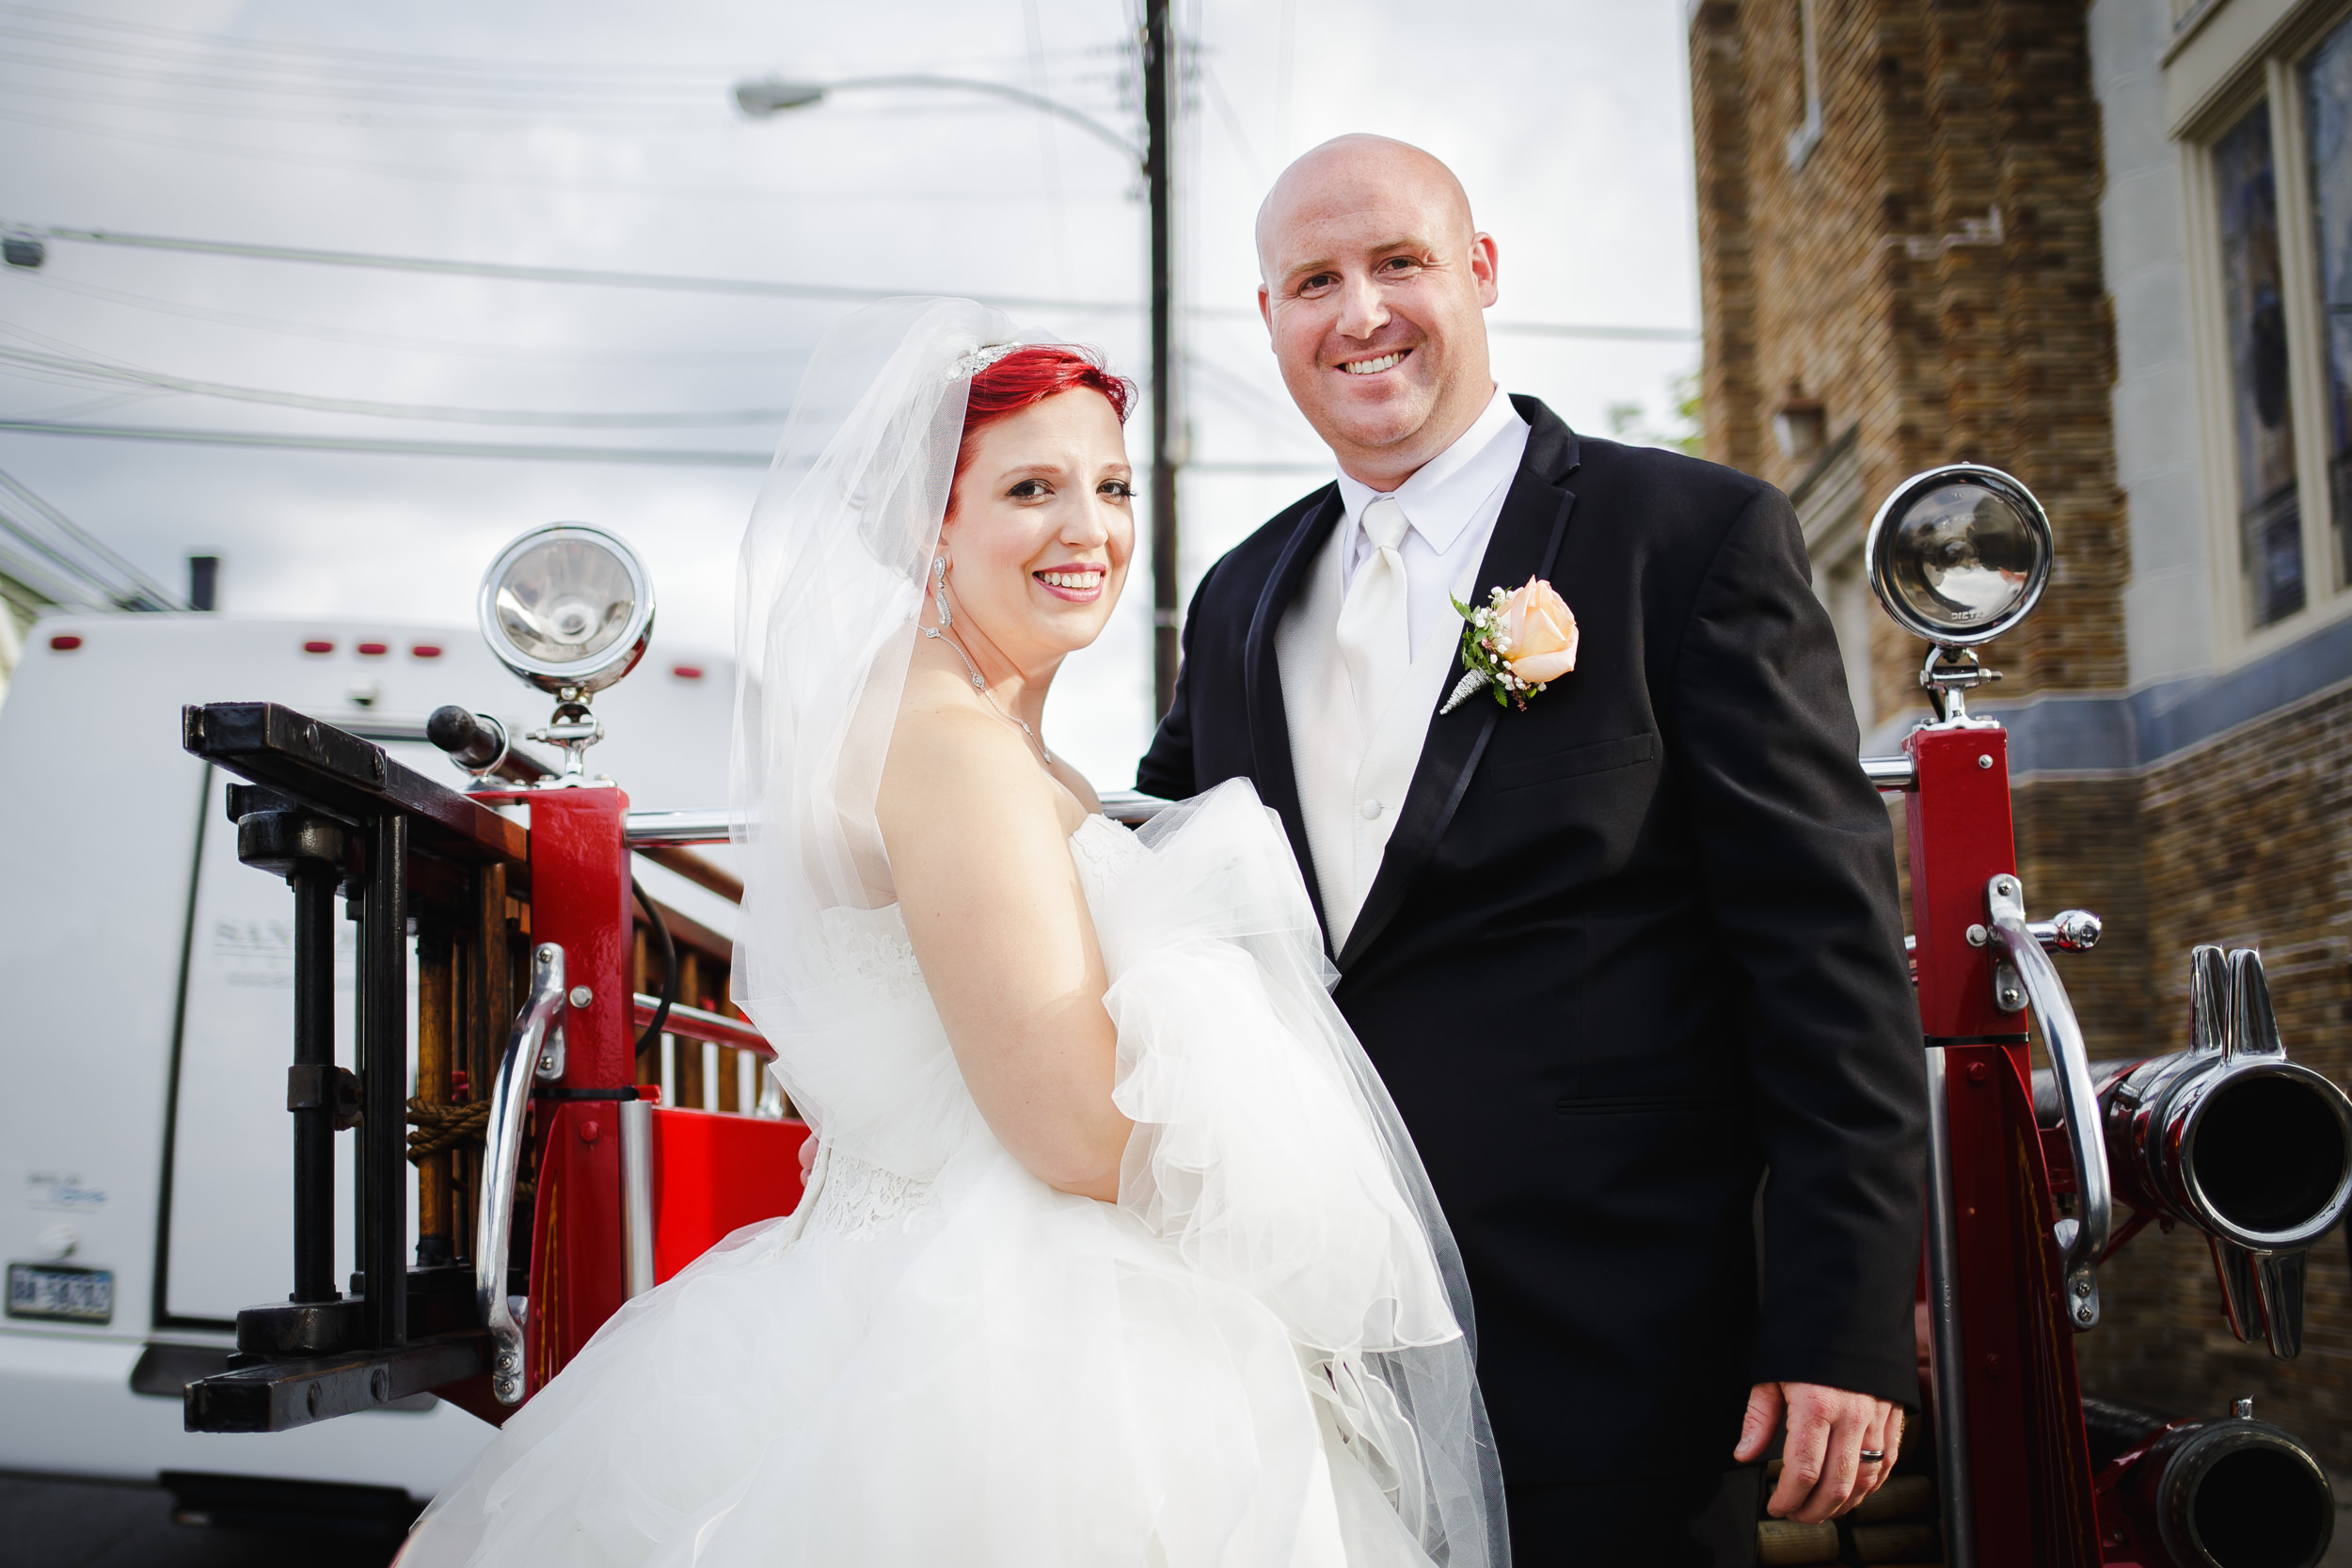 wedding portrait bride groom fire truck